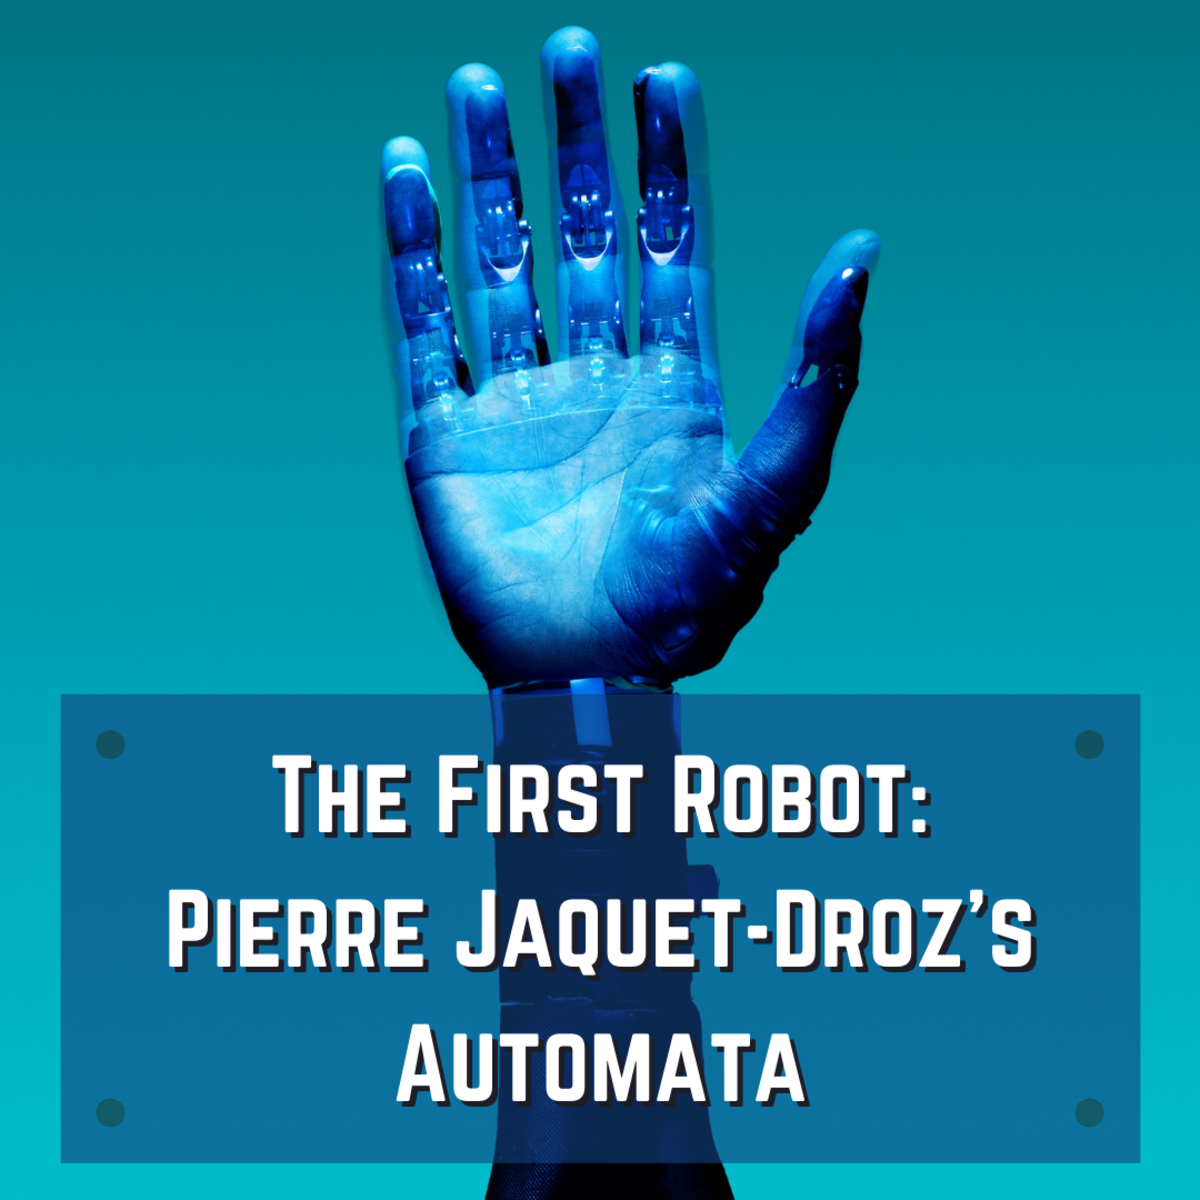 Pierre Jaquet-Droz created the first robot 240 years ago. This article will teach you about his inventions and the general significance of robotics.